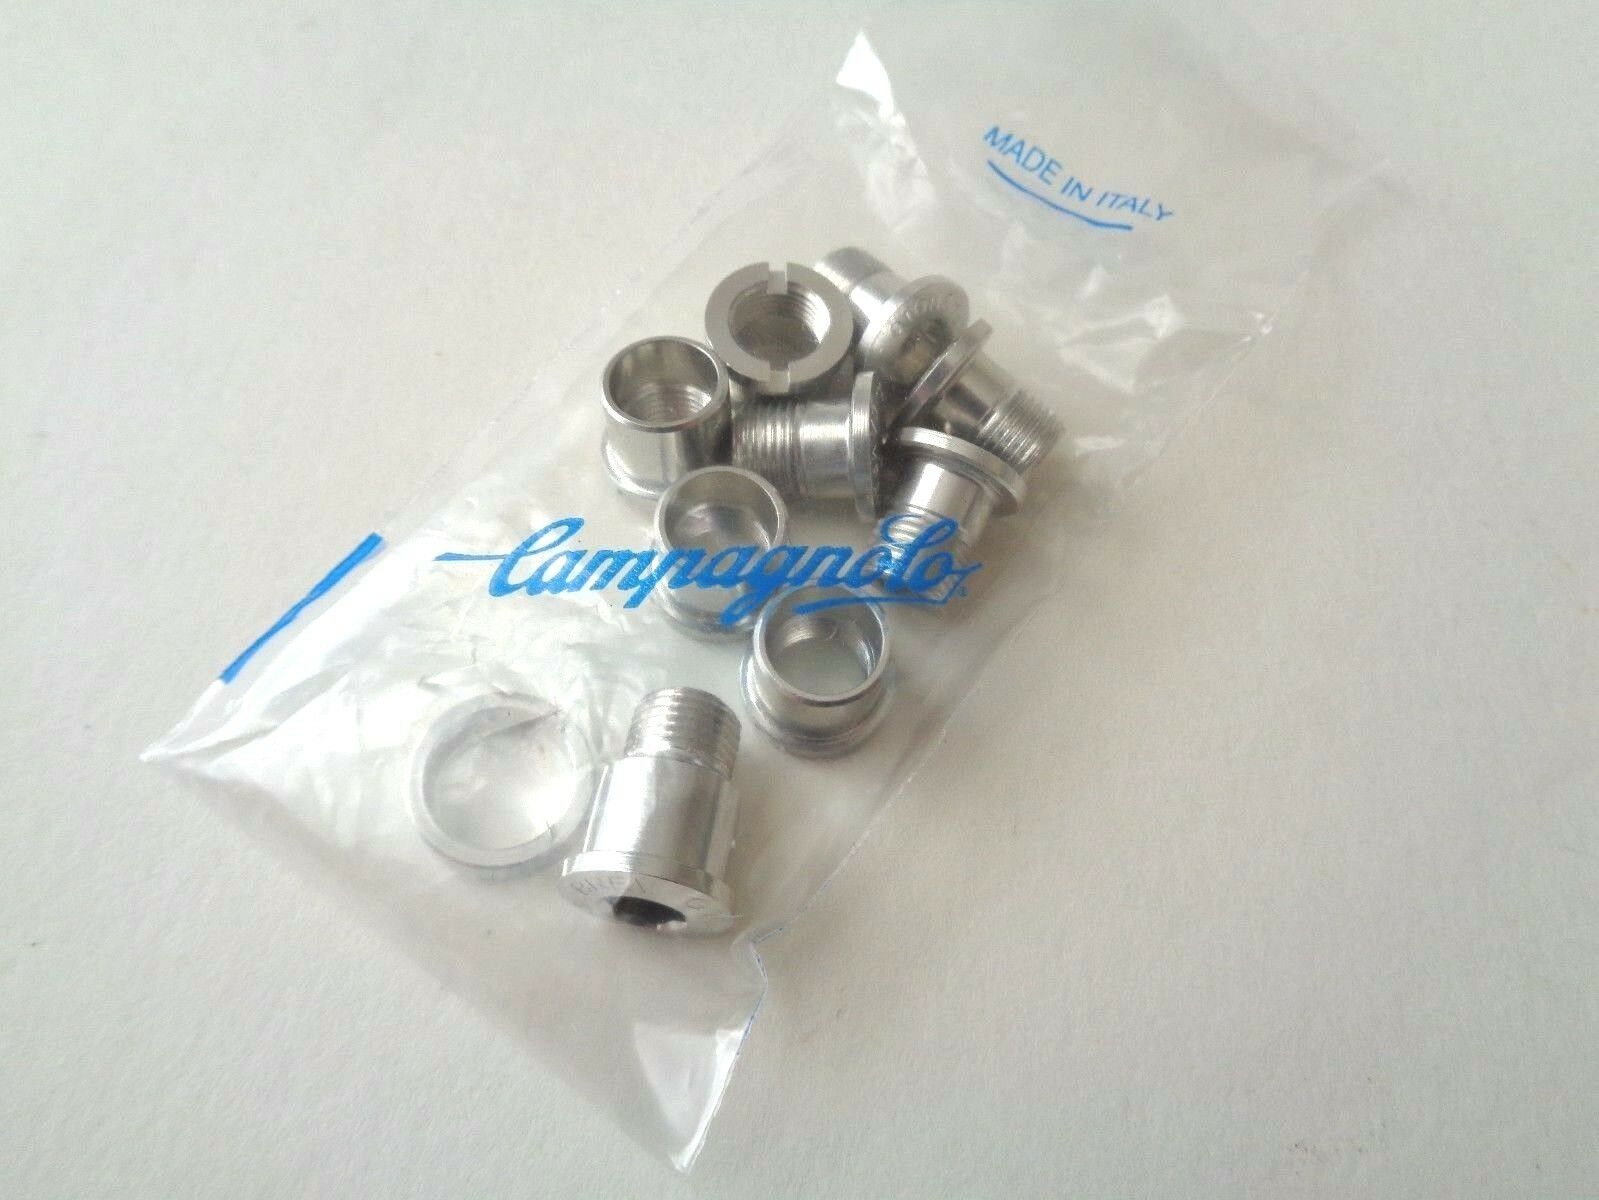 NOS Vintage Campagnolo Record hidden 5th arm aluminium chainring bolts set